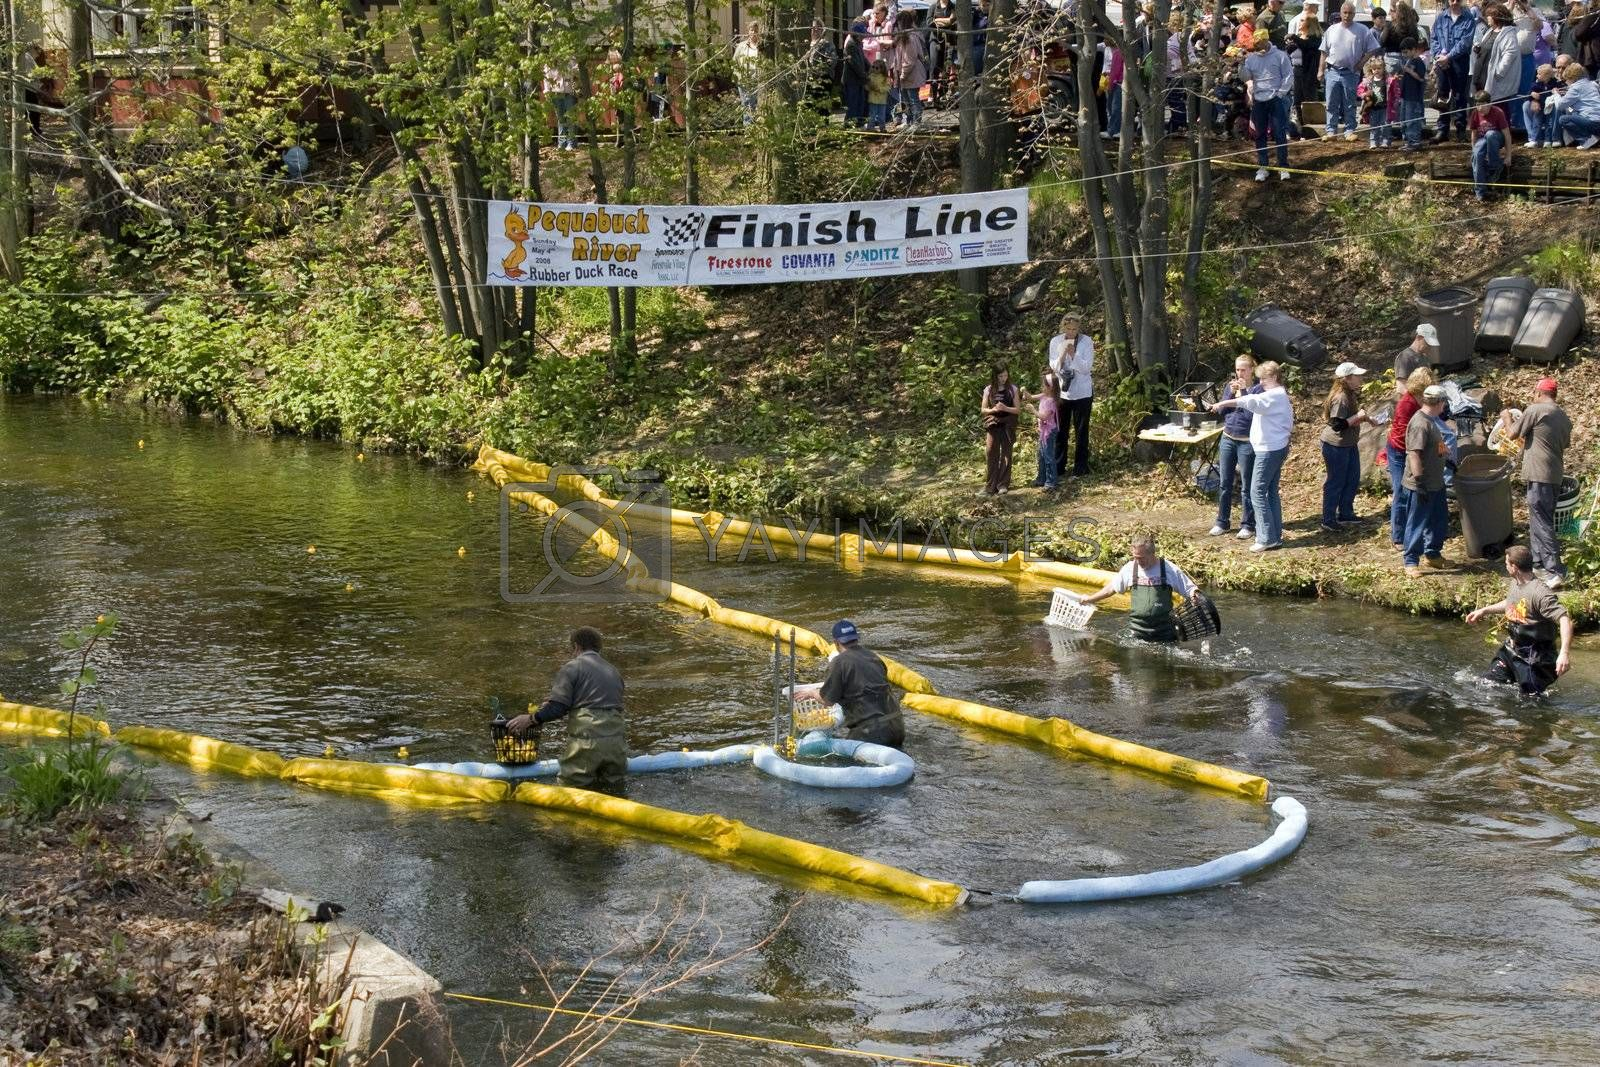 The 2008 Duck Race is an event used for local fund raising.  People purchase ducks for 5 dollars.  The duck that wins the race gets the owner a huge prize package.